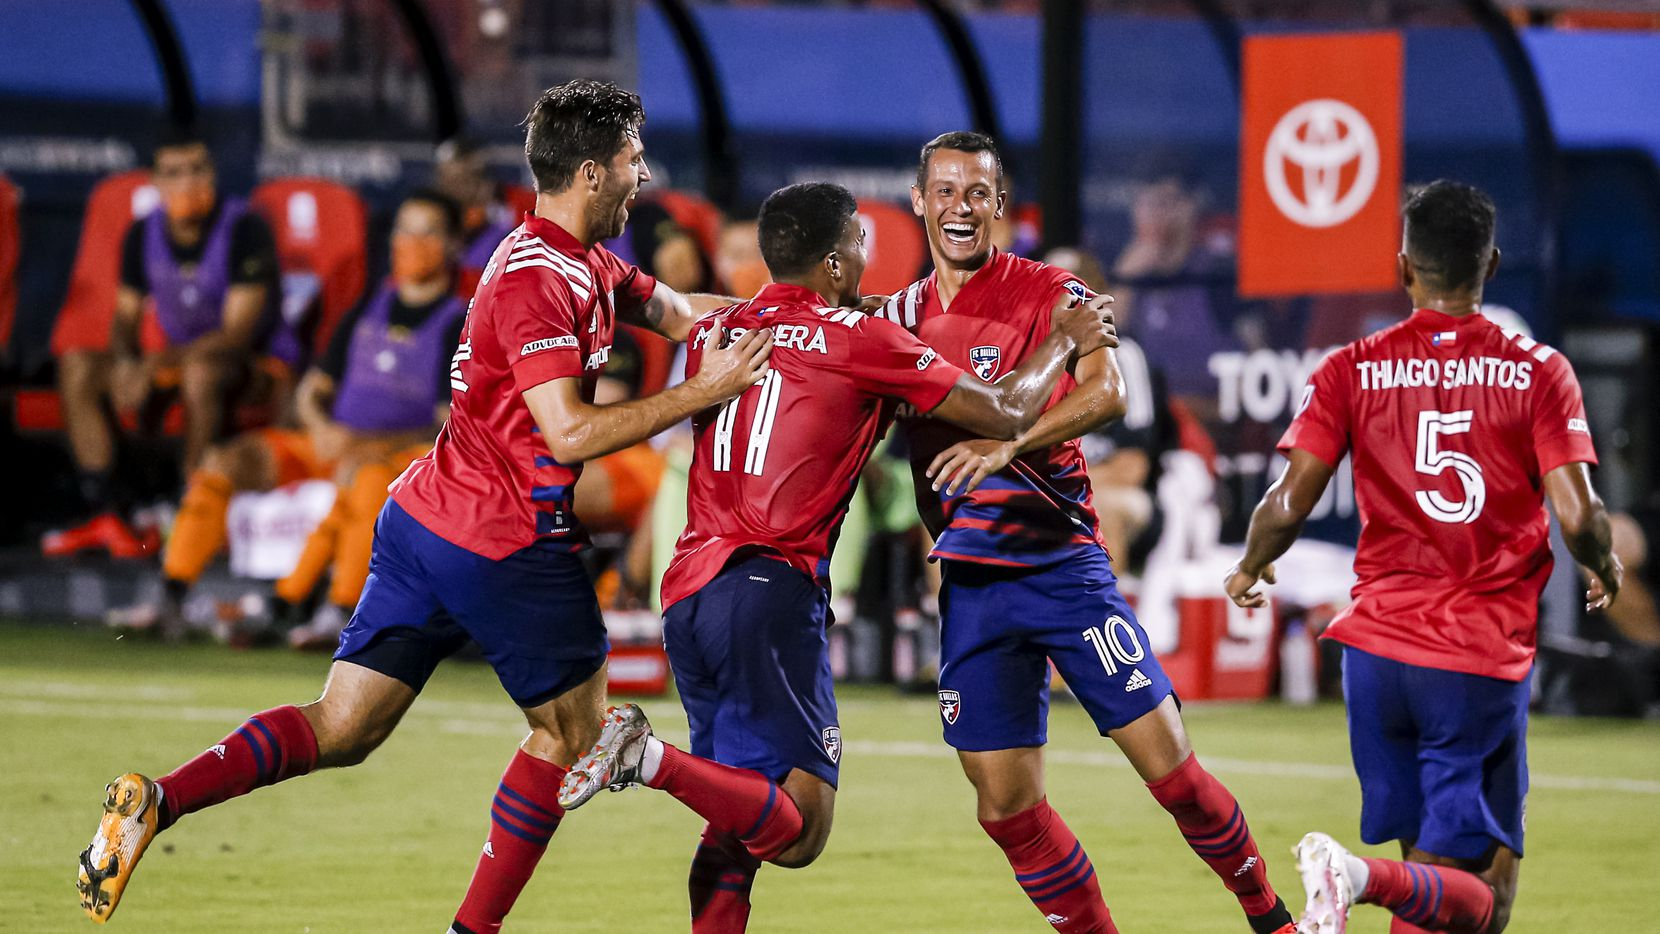 FC Dallas midfielder Ricaurte Velez (10) is congratulated by teammates after scoring a goal during the first half of an MLS soccer match against the Houston Dynamo at Toyota Stadium in Frisco, Saturday, September 12, 2020.